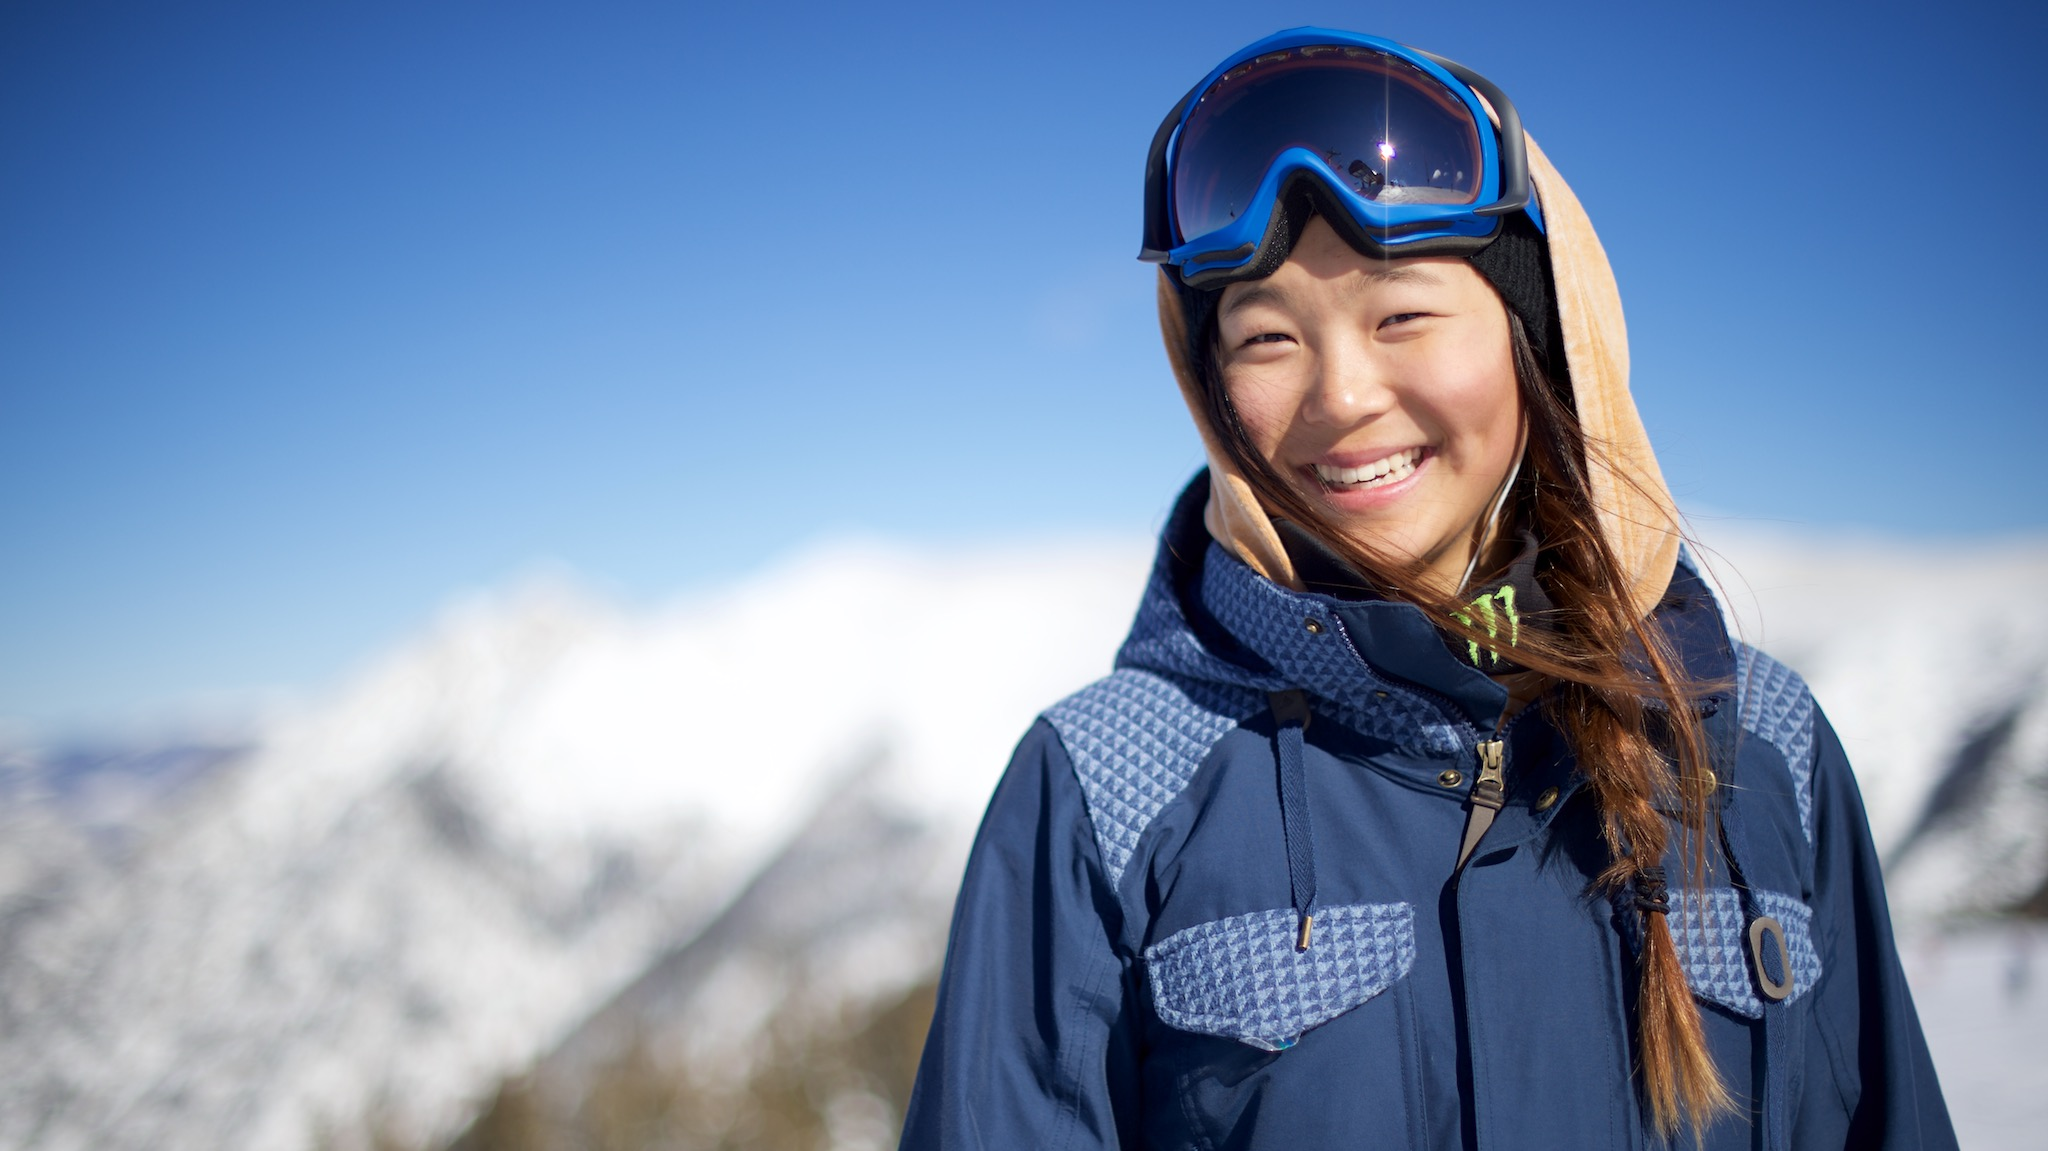 chloe kim - photo #30